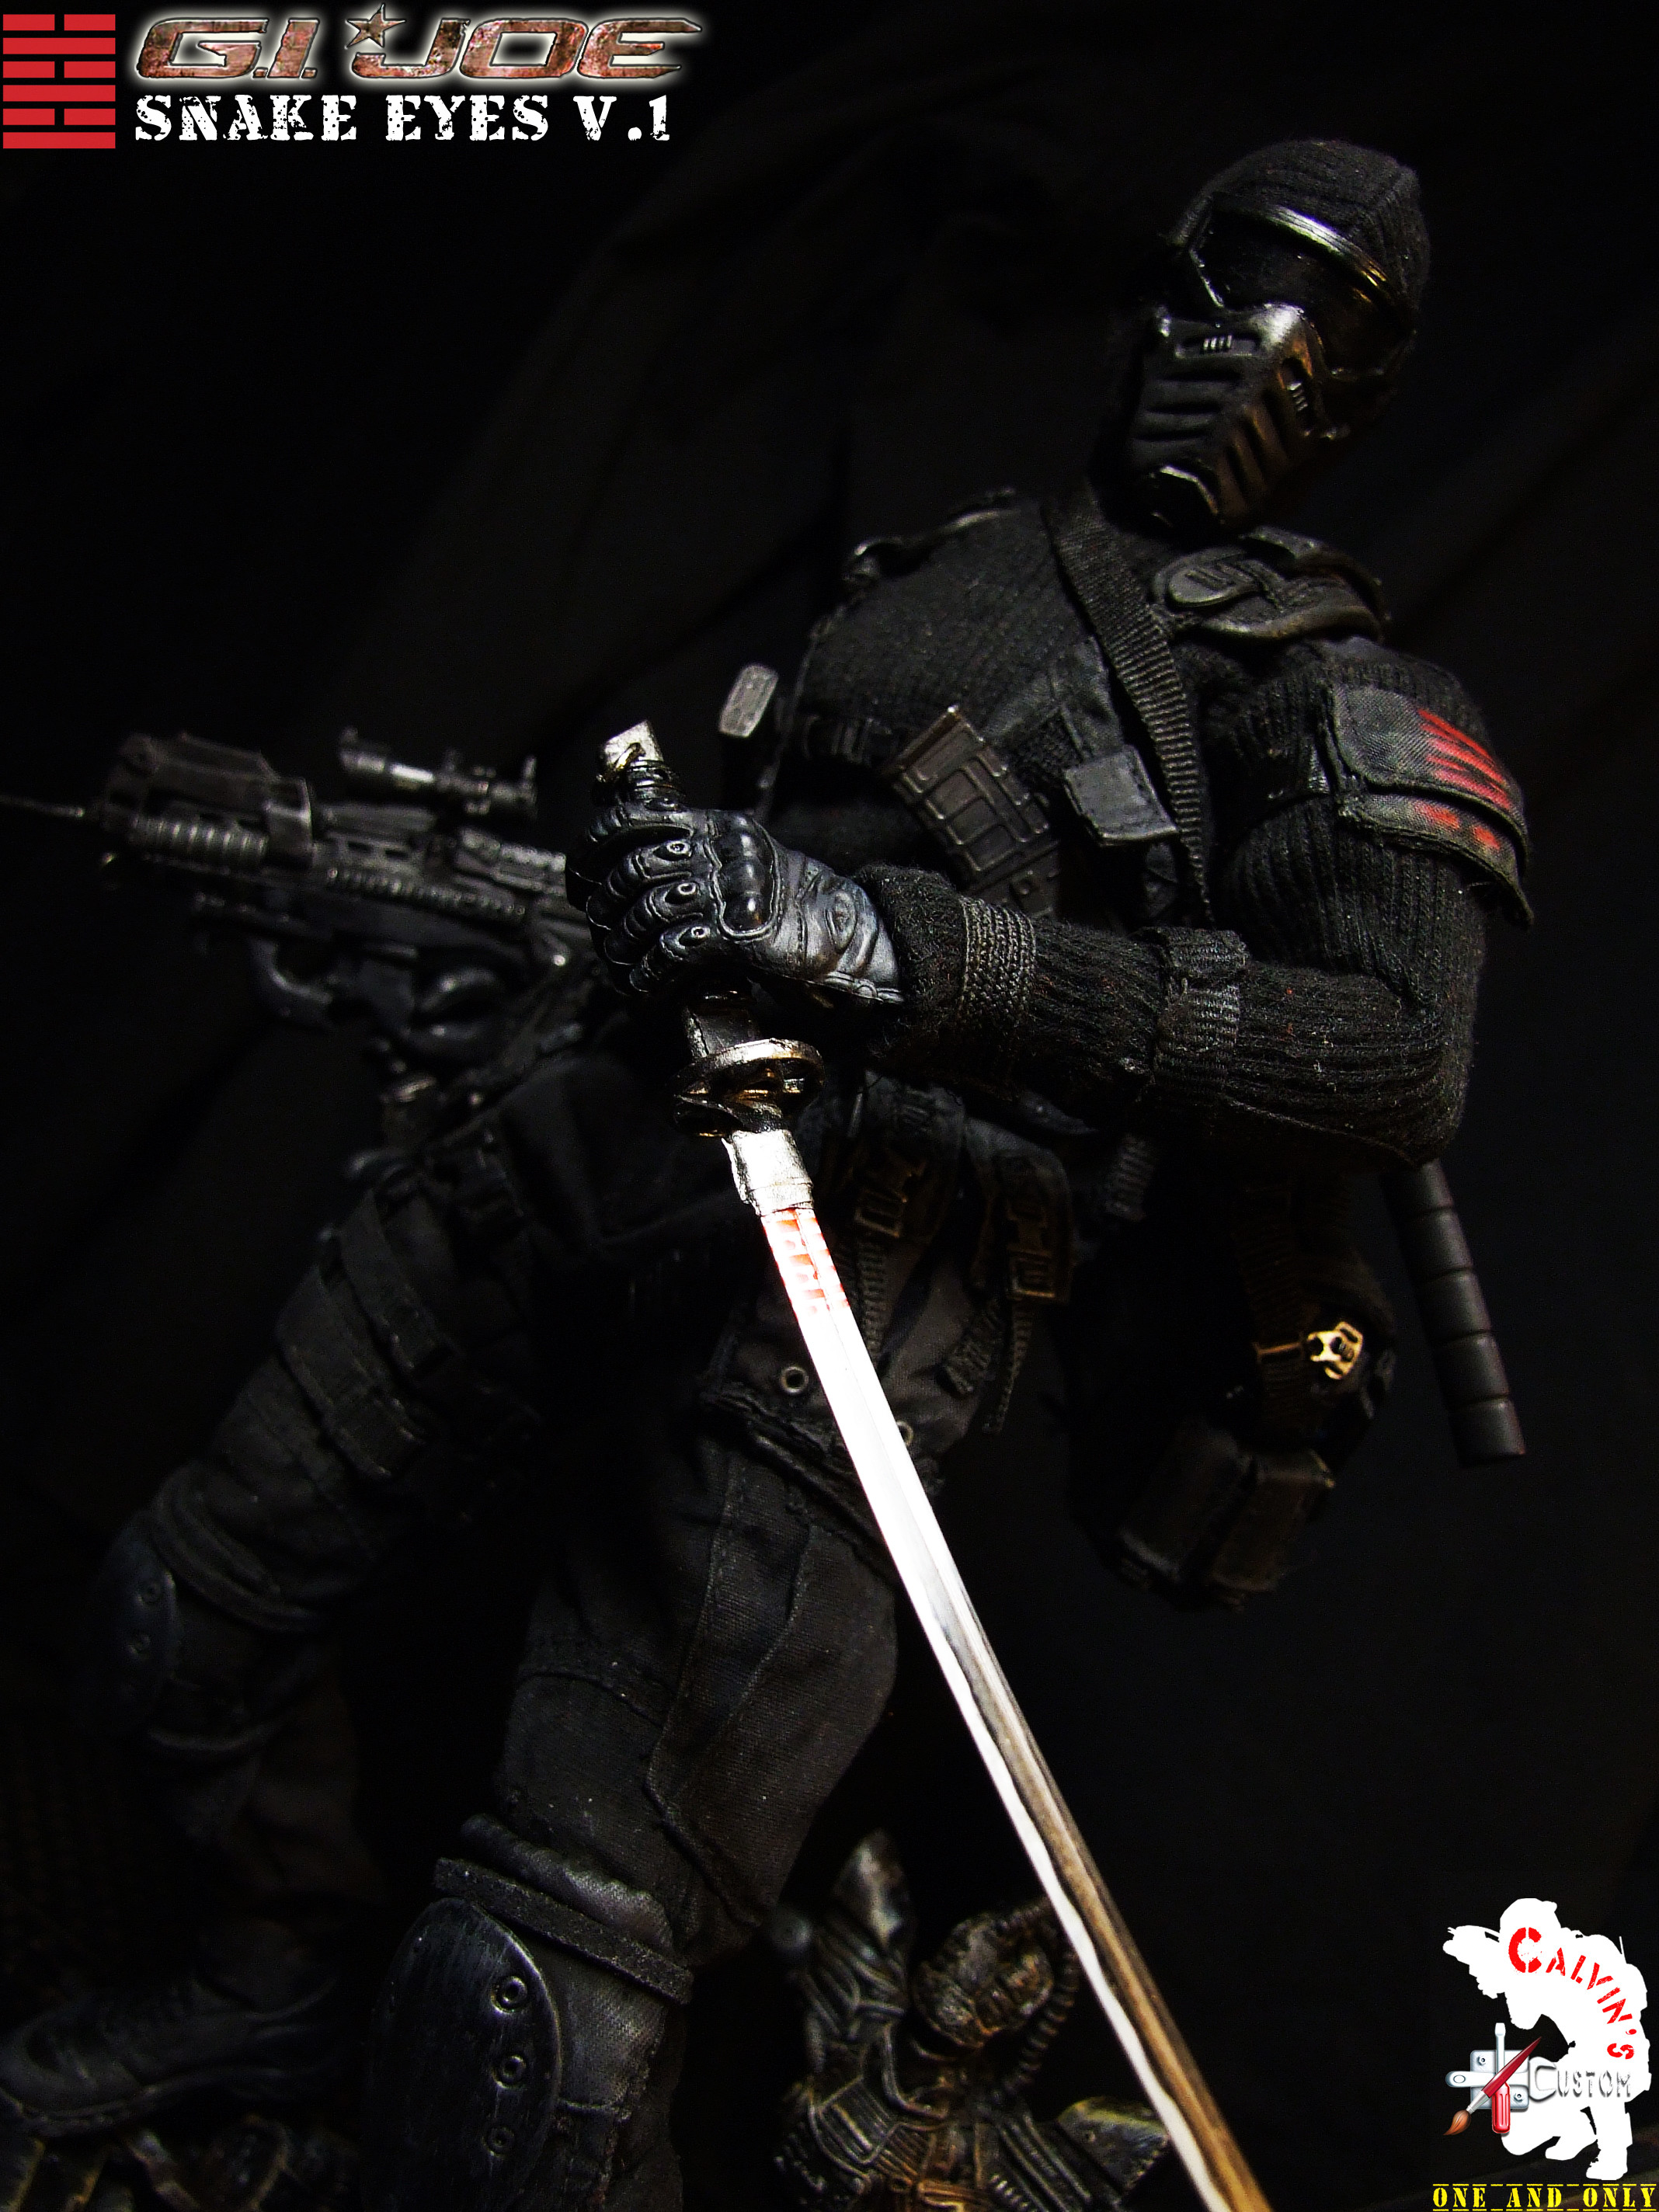 Res: 2136x2848, Snake Eyes images Calvin's Custom Snake Eyes Version 1 HD wallpaper and  background photos